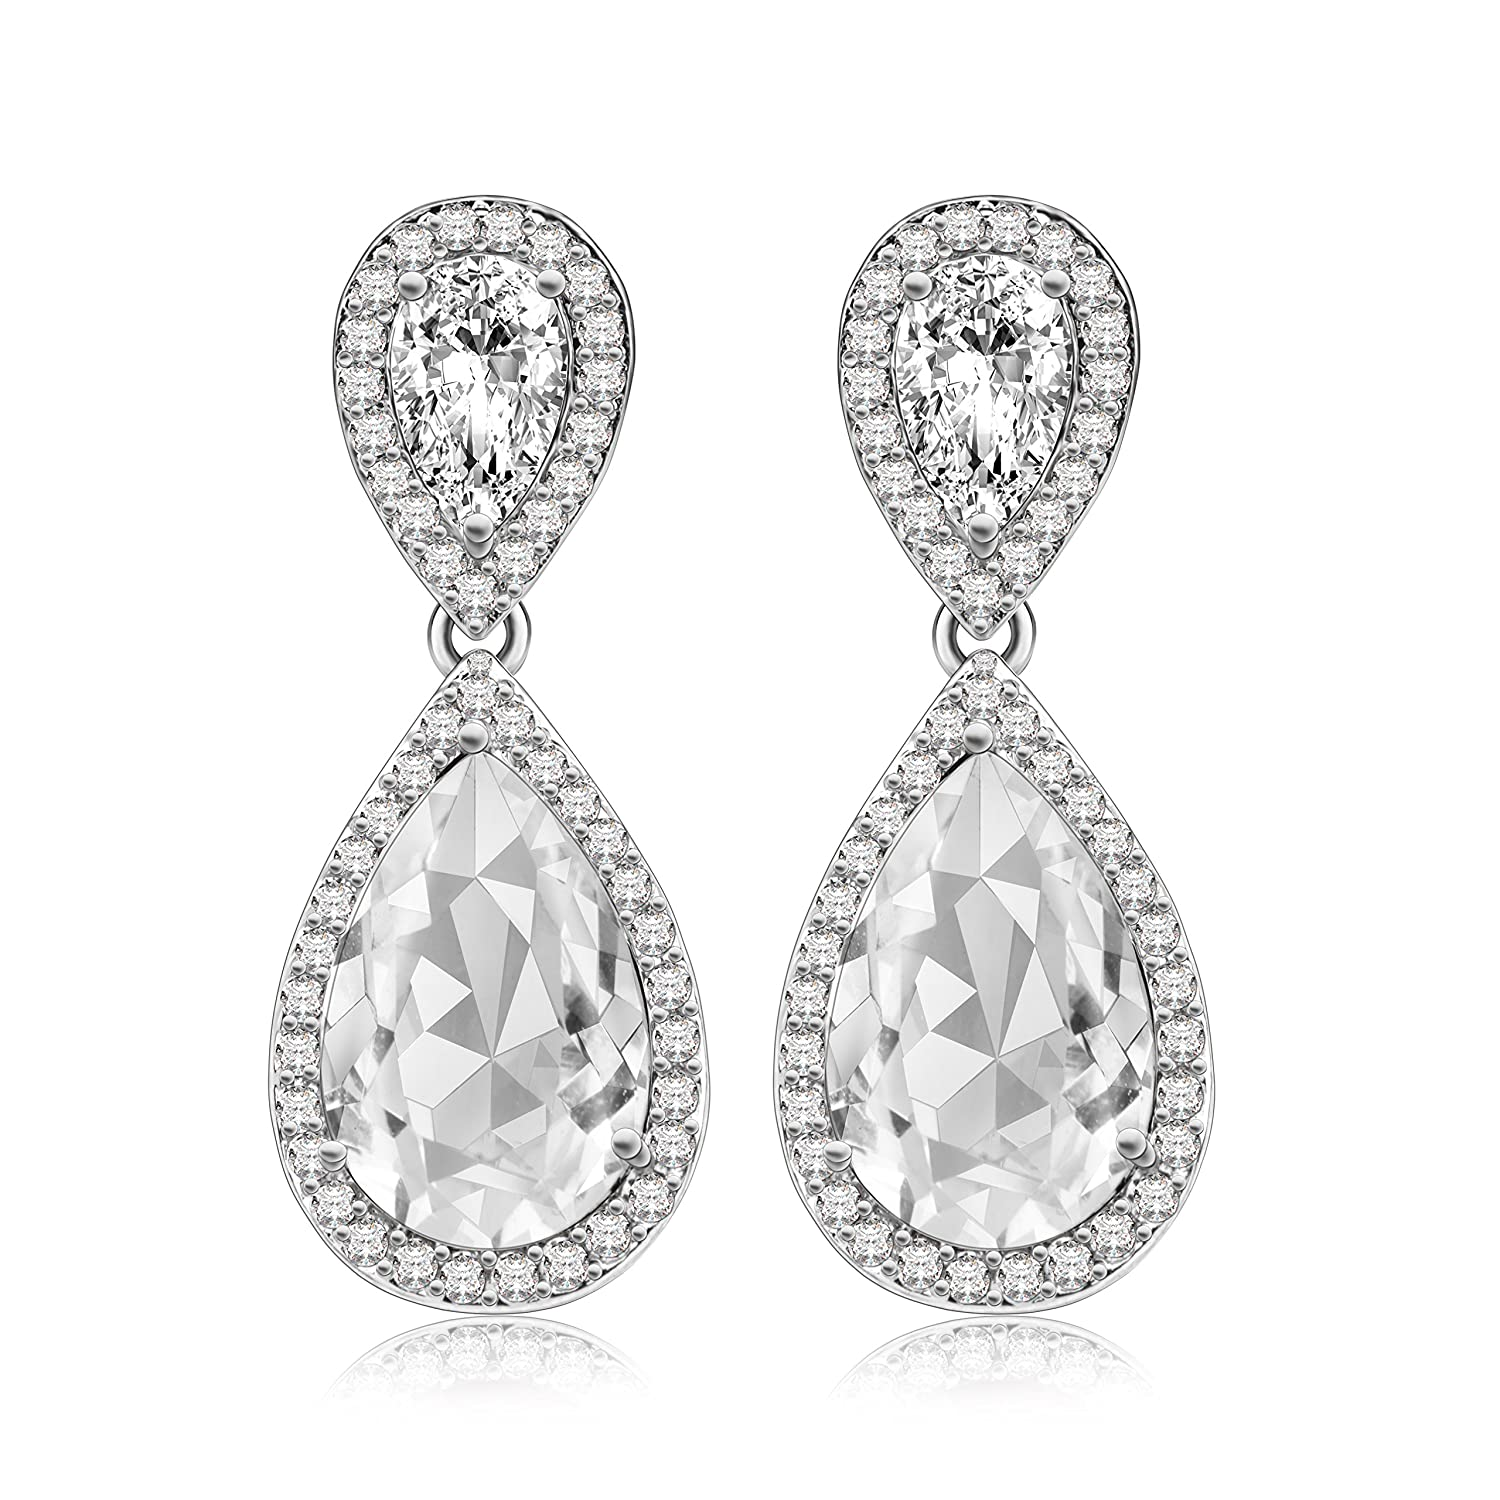 Crystal Dangle Earrings Made With Swarovski Crystals Sparkly Teardrop Chandelier Exquisite Workmanship Fashion Stylish Elegant Design